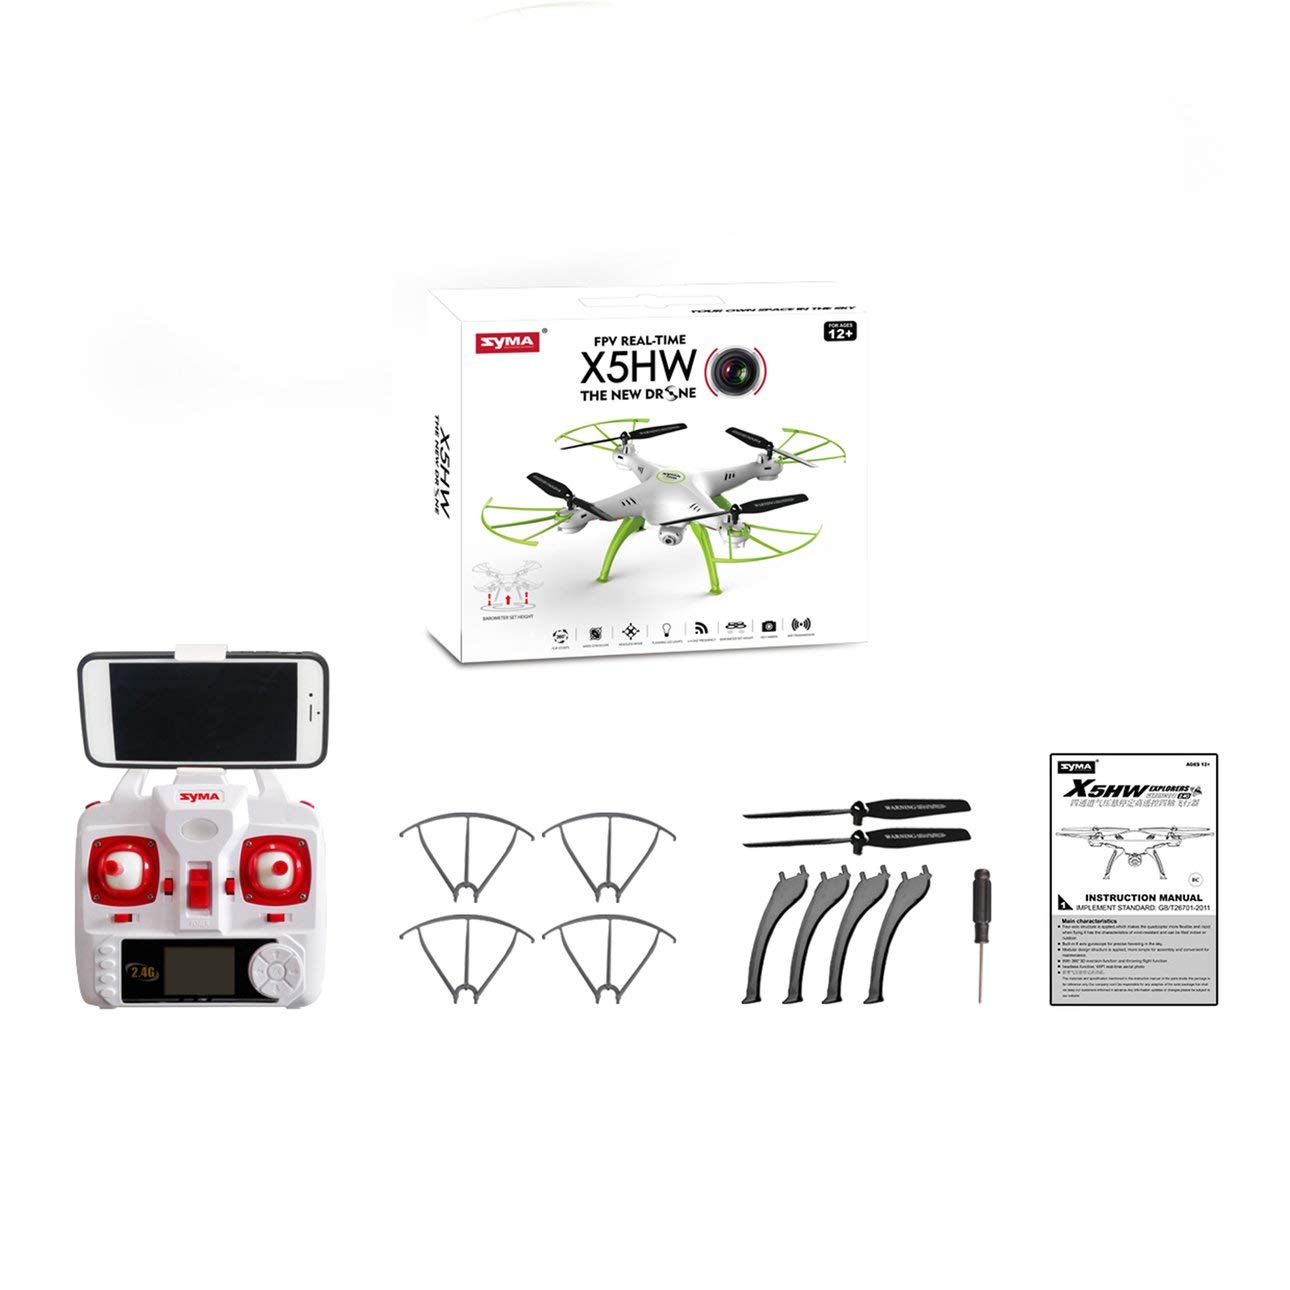 Liobaba Mini Quadcopter Four Axis Aircraft Outdoor Electric Toy Gift Kids White